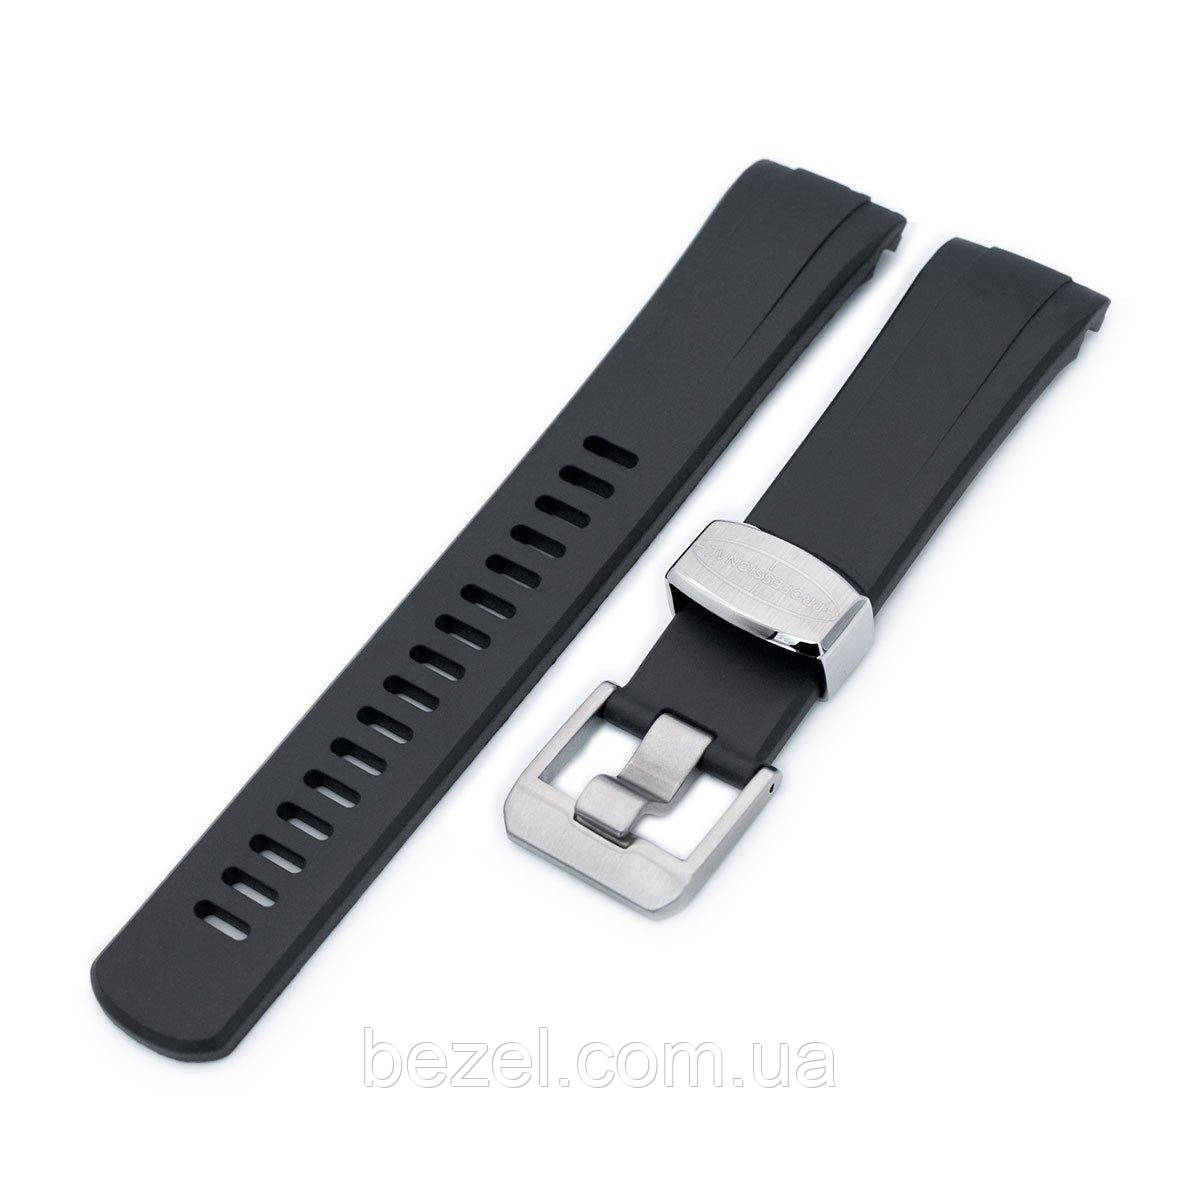 22mm Crafter Blue - Black Rubber Curved Lug Watch Band for Seiko Turtle SRP777